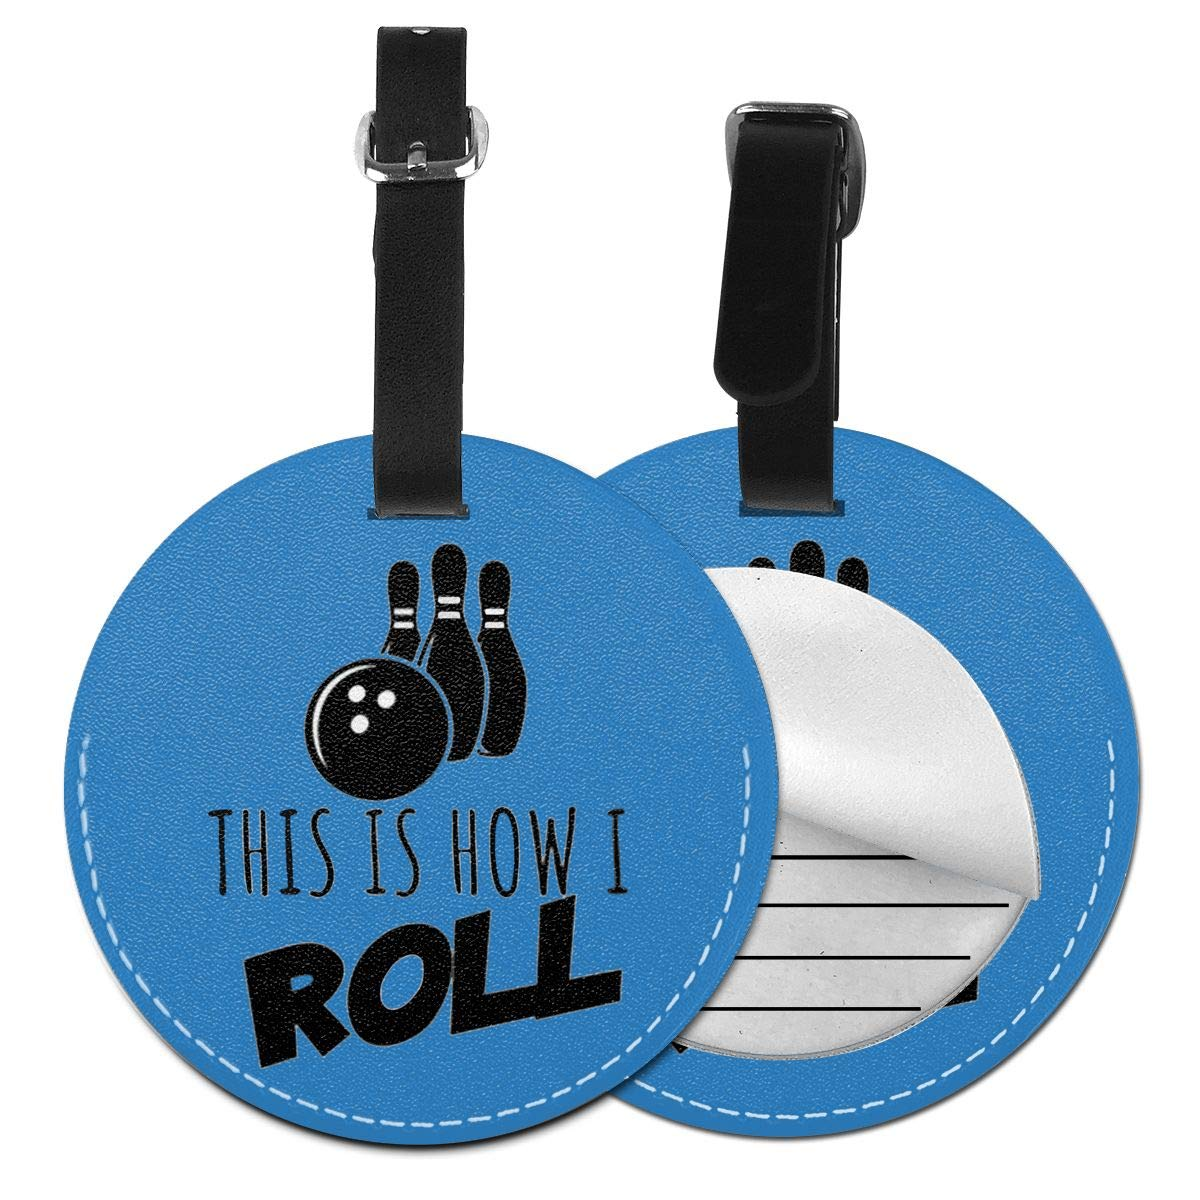 1pcs,2pcs,4pcs This Is How I Roll Bowling Pu Leather Double Sides Print Round Luggage Tag Mutilple Packs